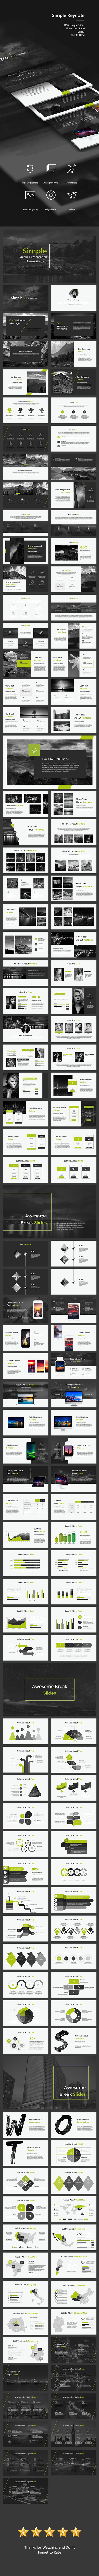 Simple Keynote - Business Keynote Templates Download here : https://graphicriver.net/item/simple-keynote/20274361?s_rank=150&ref=Al-fatih #keynote #keynote template #keynote slides #design #premium design #design of keynote #keynote presentation #envato #envato market #graphicriver